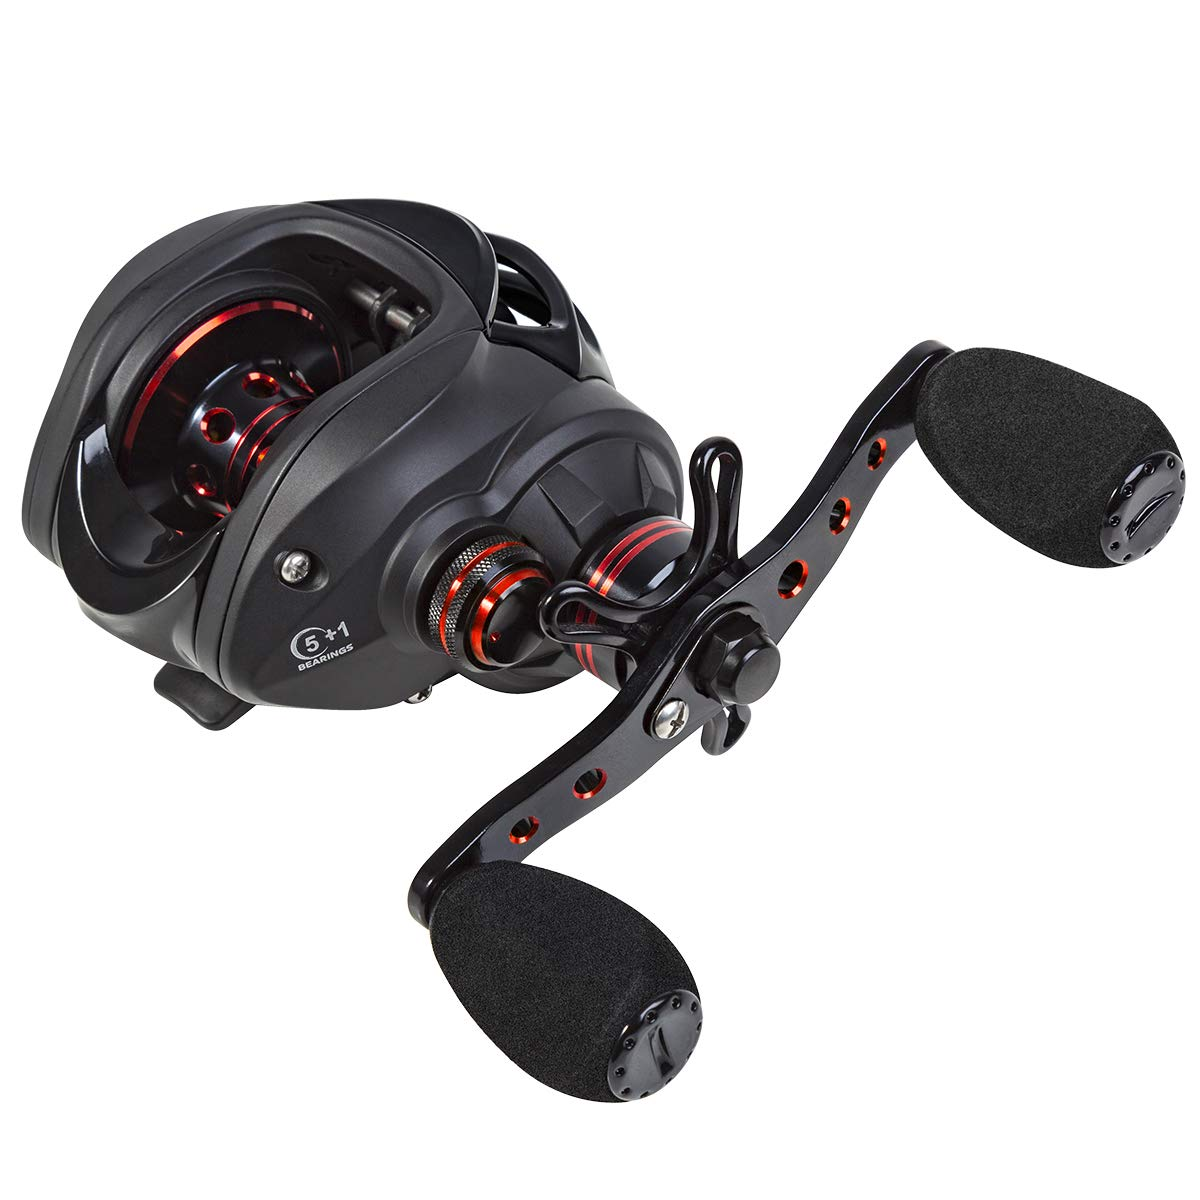 TAIRYO Baitcasting Reel 5 1 Shielded Stainless Steel Ball Bearings 12LB Carbon Fiber Drag 7.0 1 Gear Ratio Fishing Reel